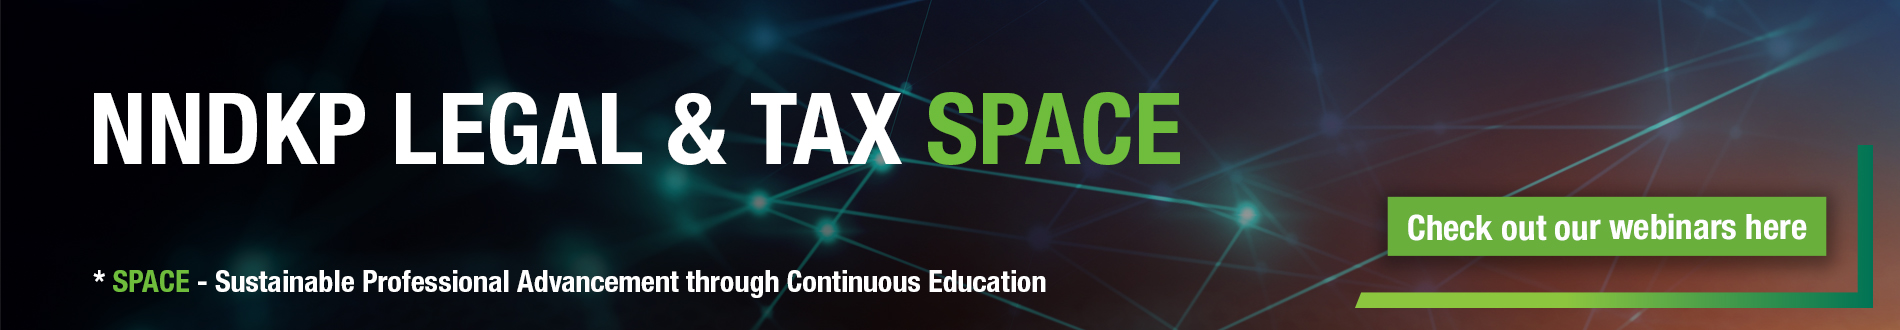 NNDKP-Legal-Tax-SPACE_Website-banner